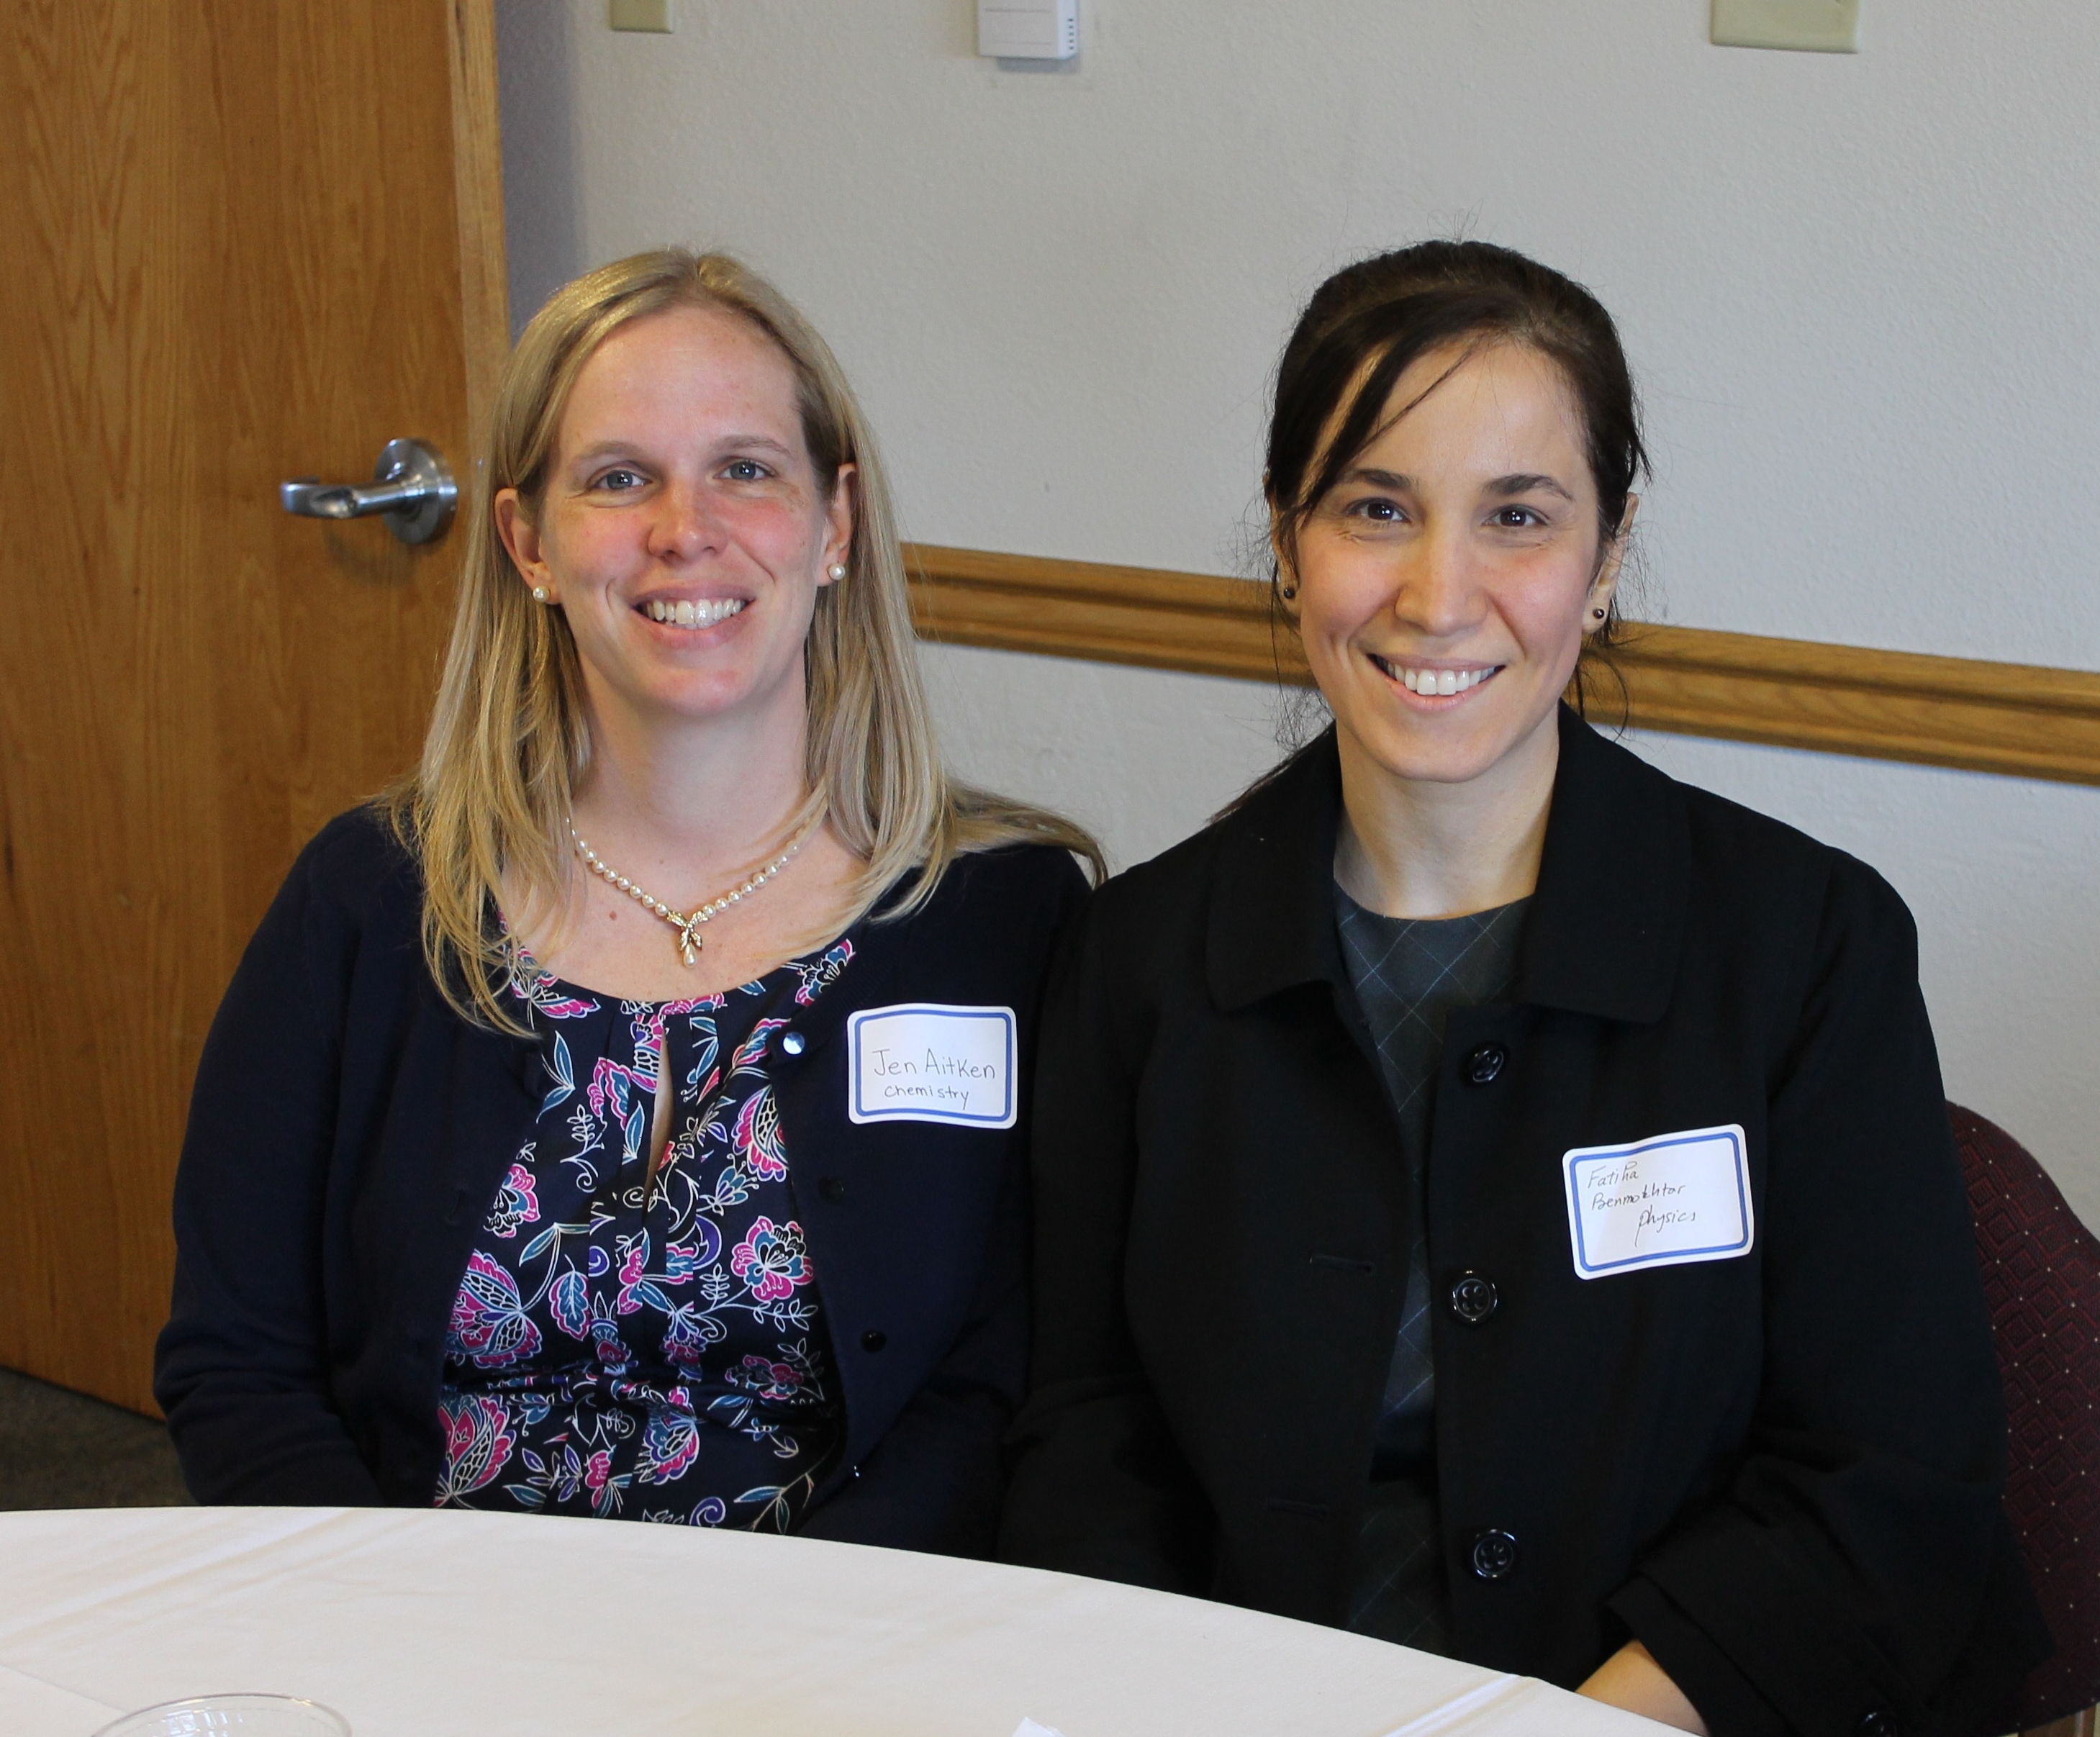 Drs. Aitken and Benmokhtar (members of the WIS@DU leadership committee)